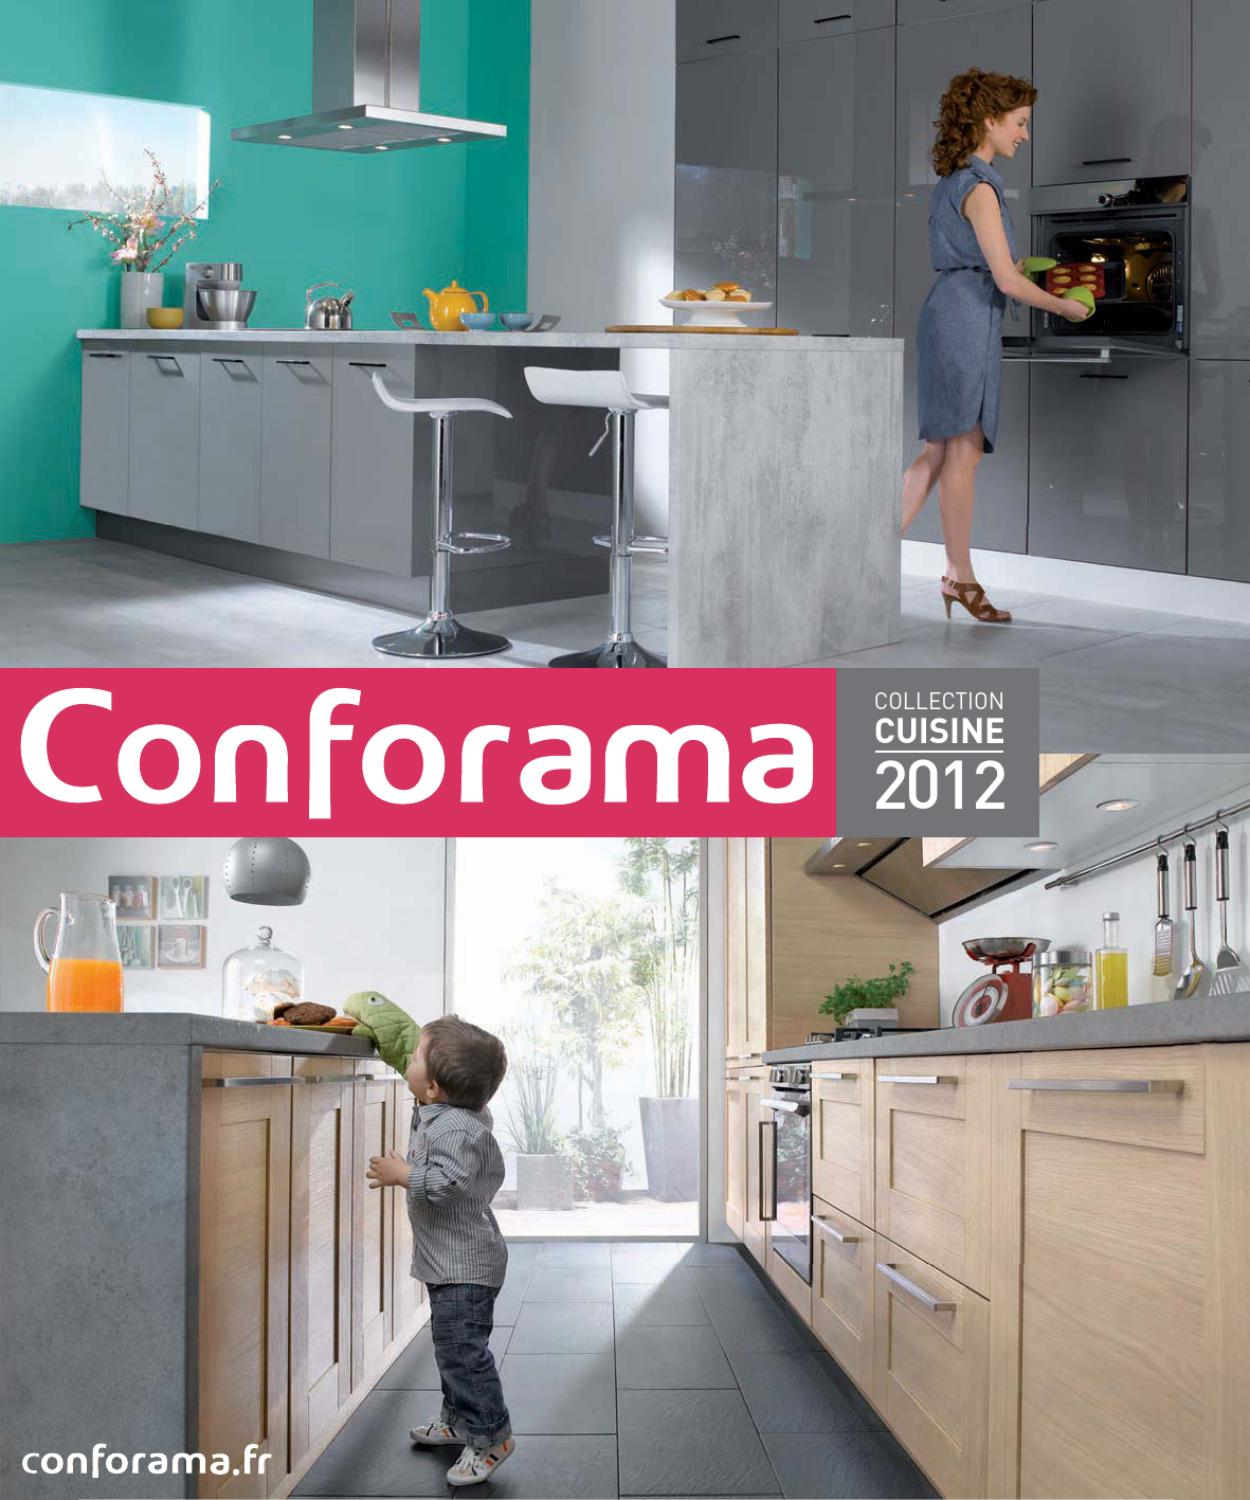 Conforama_fr-Cuсsine10 by Proomo France - issuu